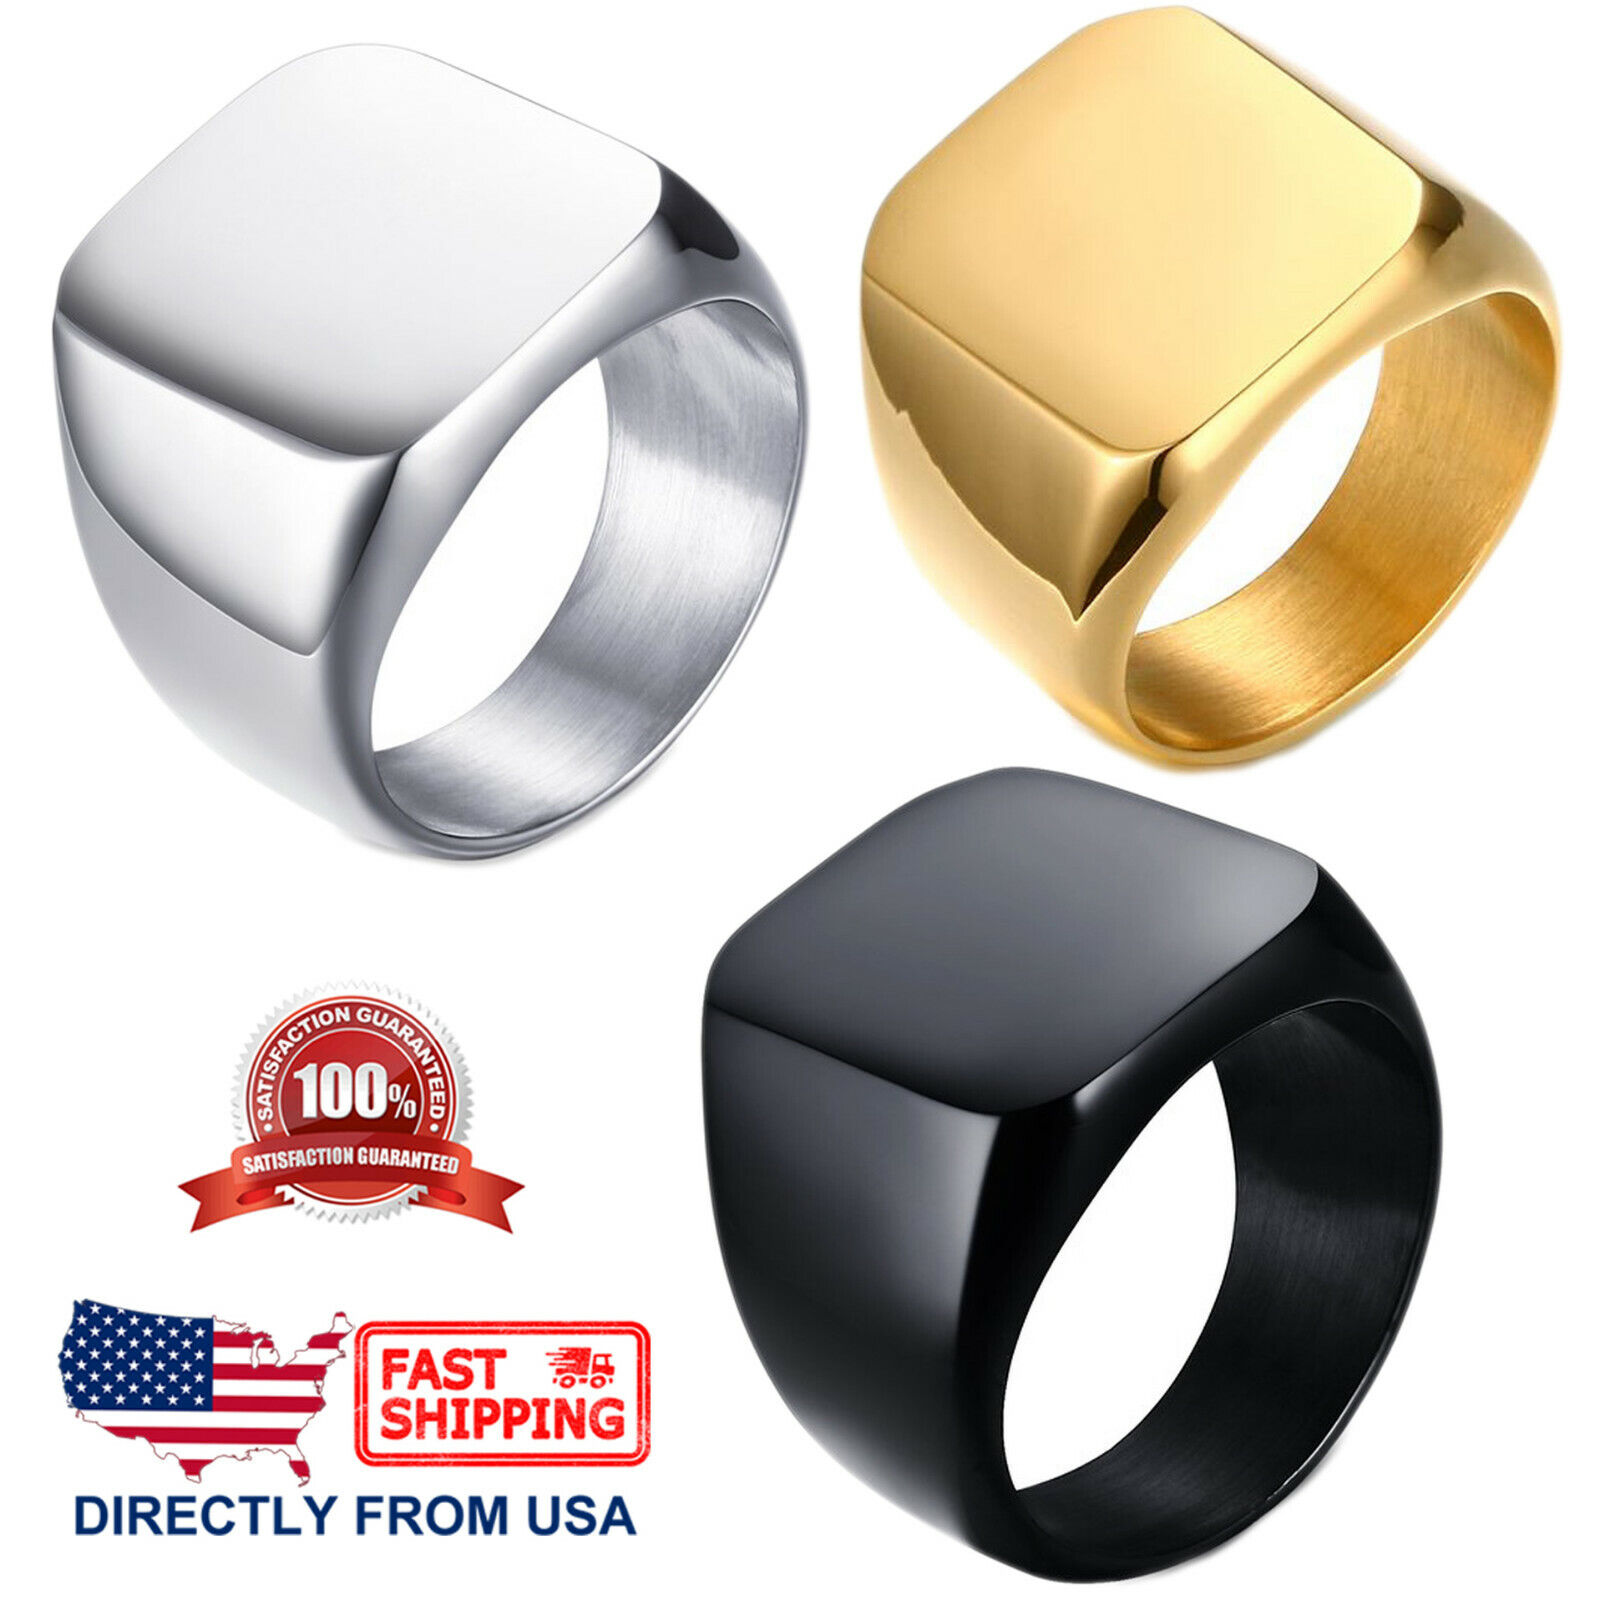 Men's Stainless Steel Classic Polished Signet Ring, Silver, Gold, or Black Color Jewelry & Watches